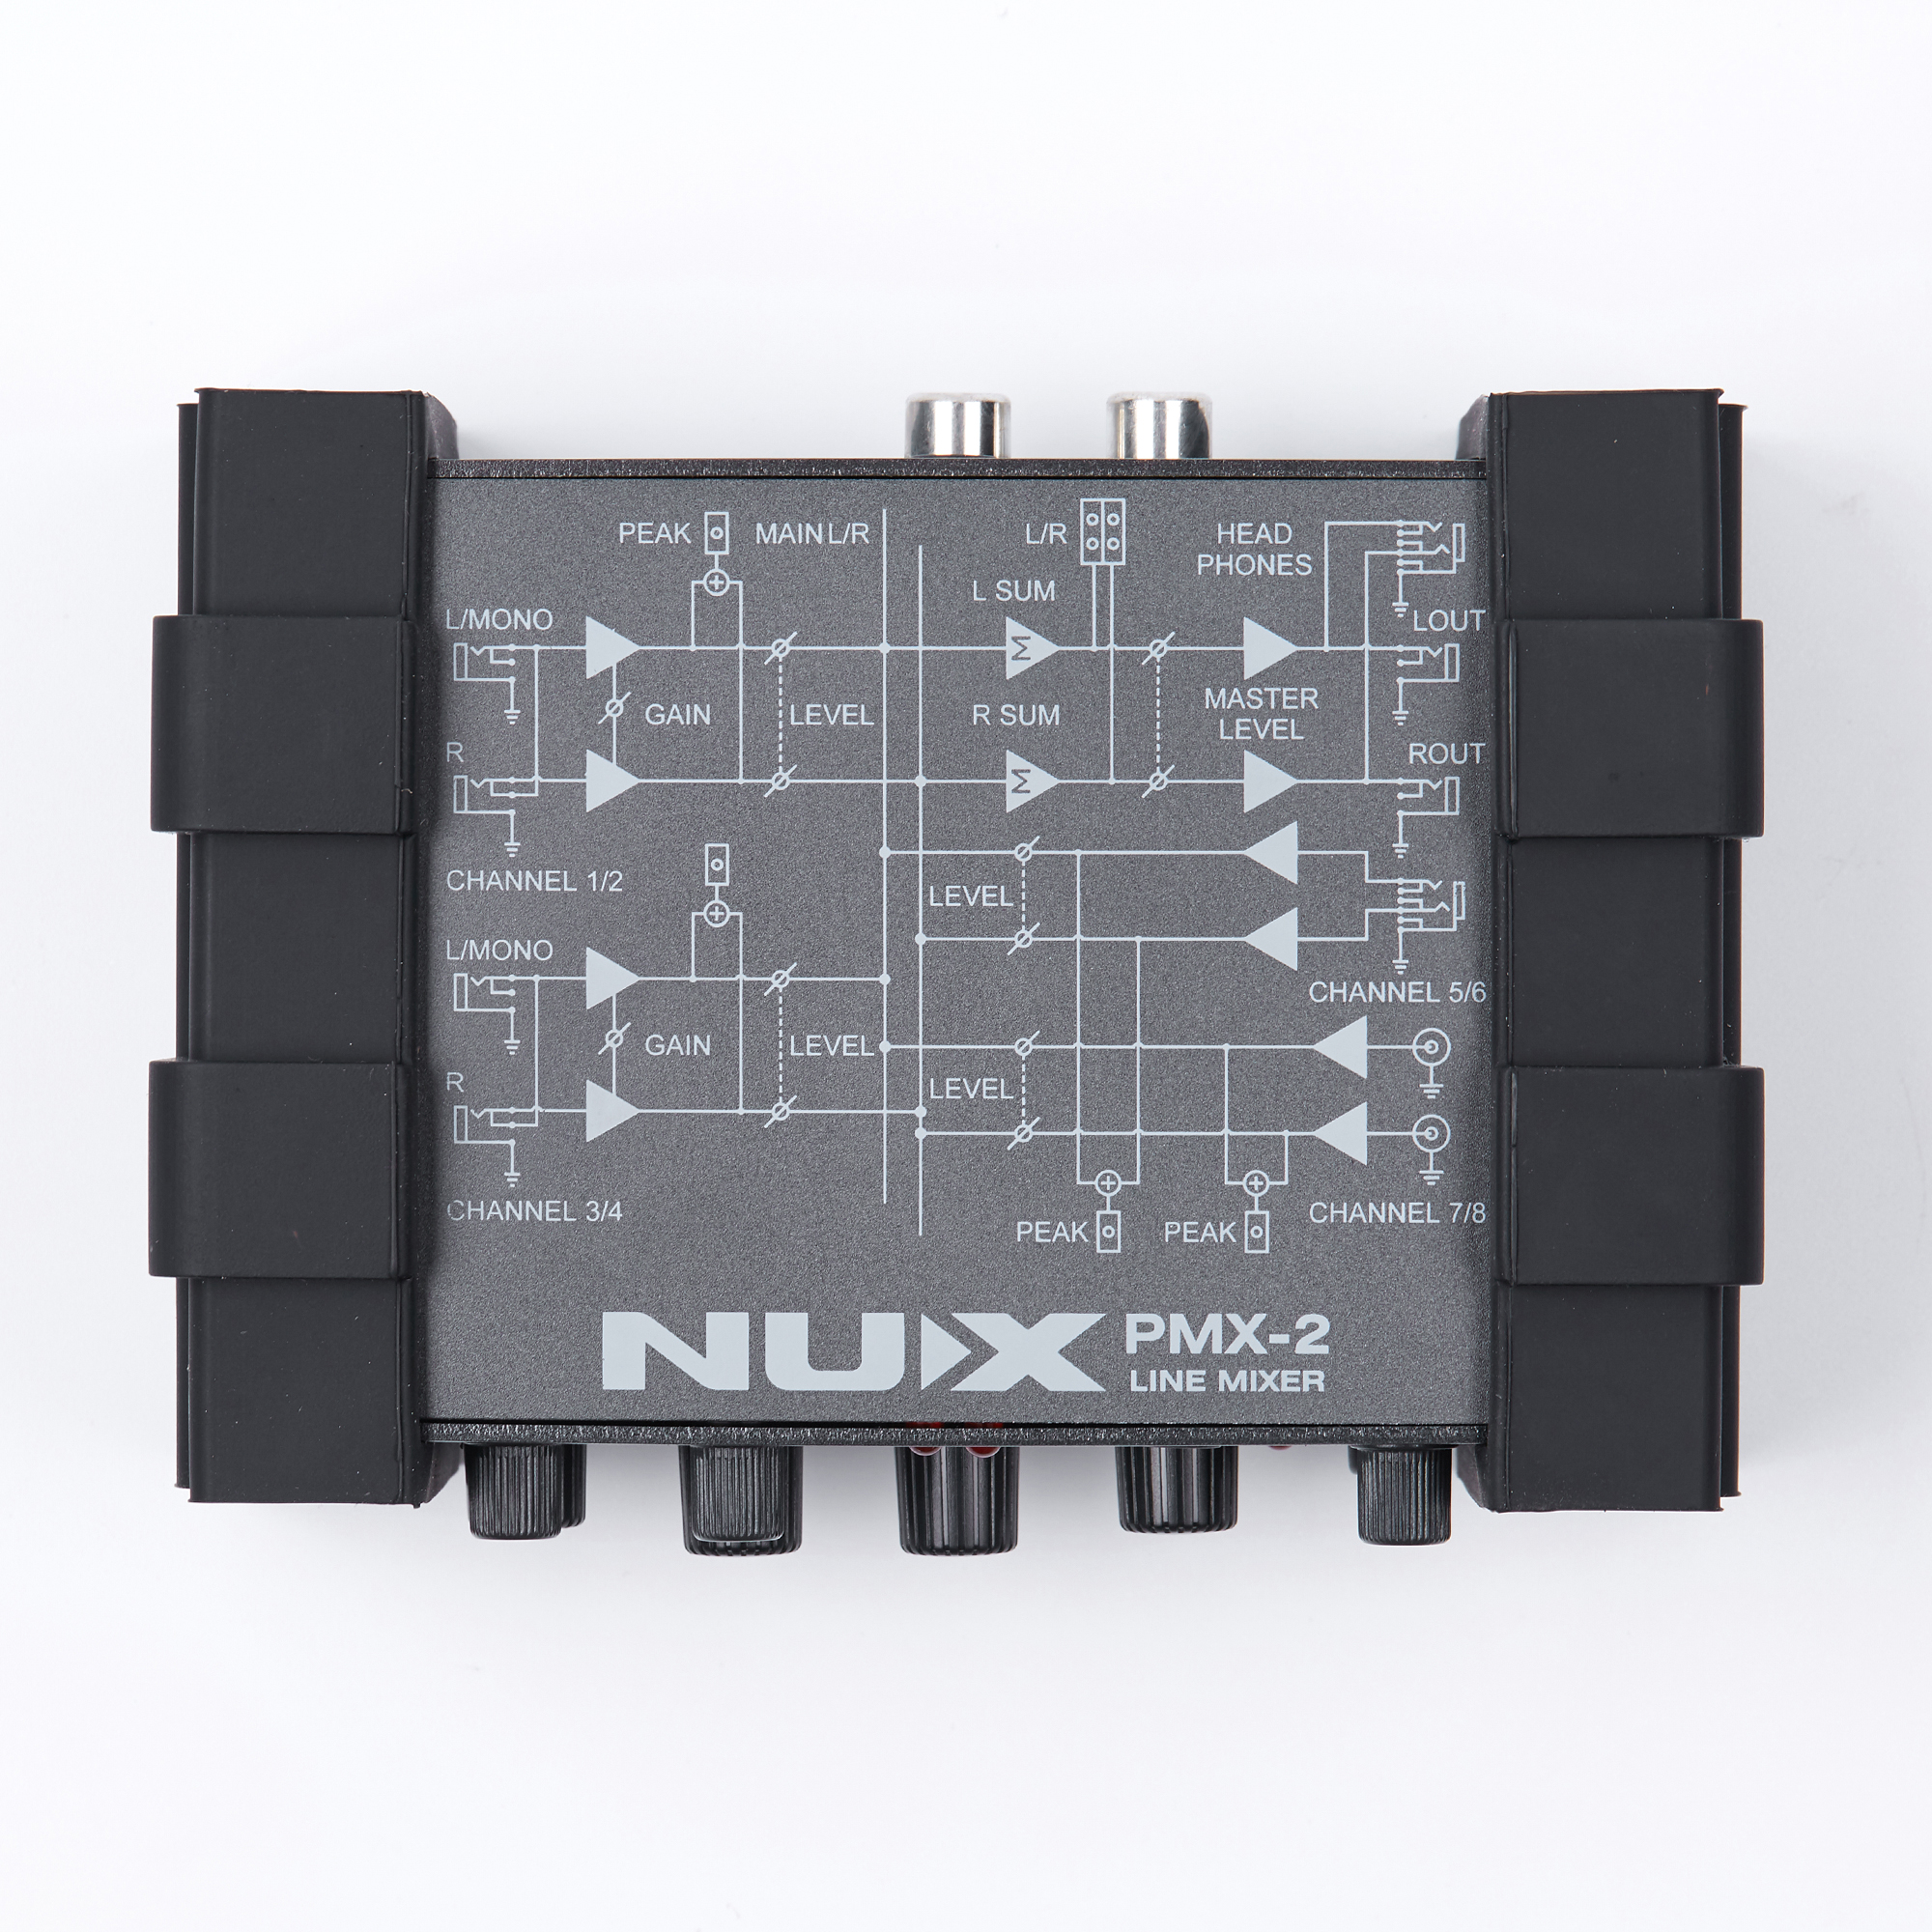 Gain Control 8 Inputs and 2 Outputs NUX PMX-2 Multi-Channel Mini Mixer 30 Musical Instruments Accessories for Guitar Bass Player zndiy bry rf dc12v 1ch learning code remote control switch high power two buttons remote control